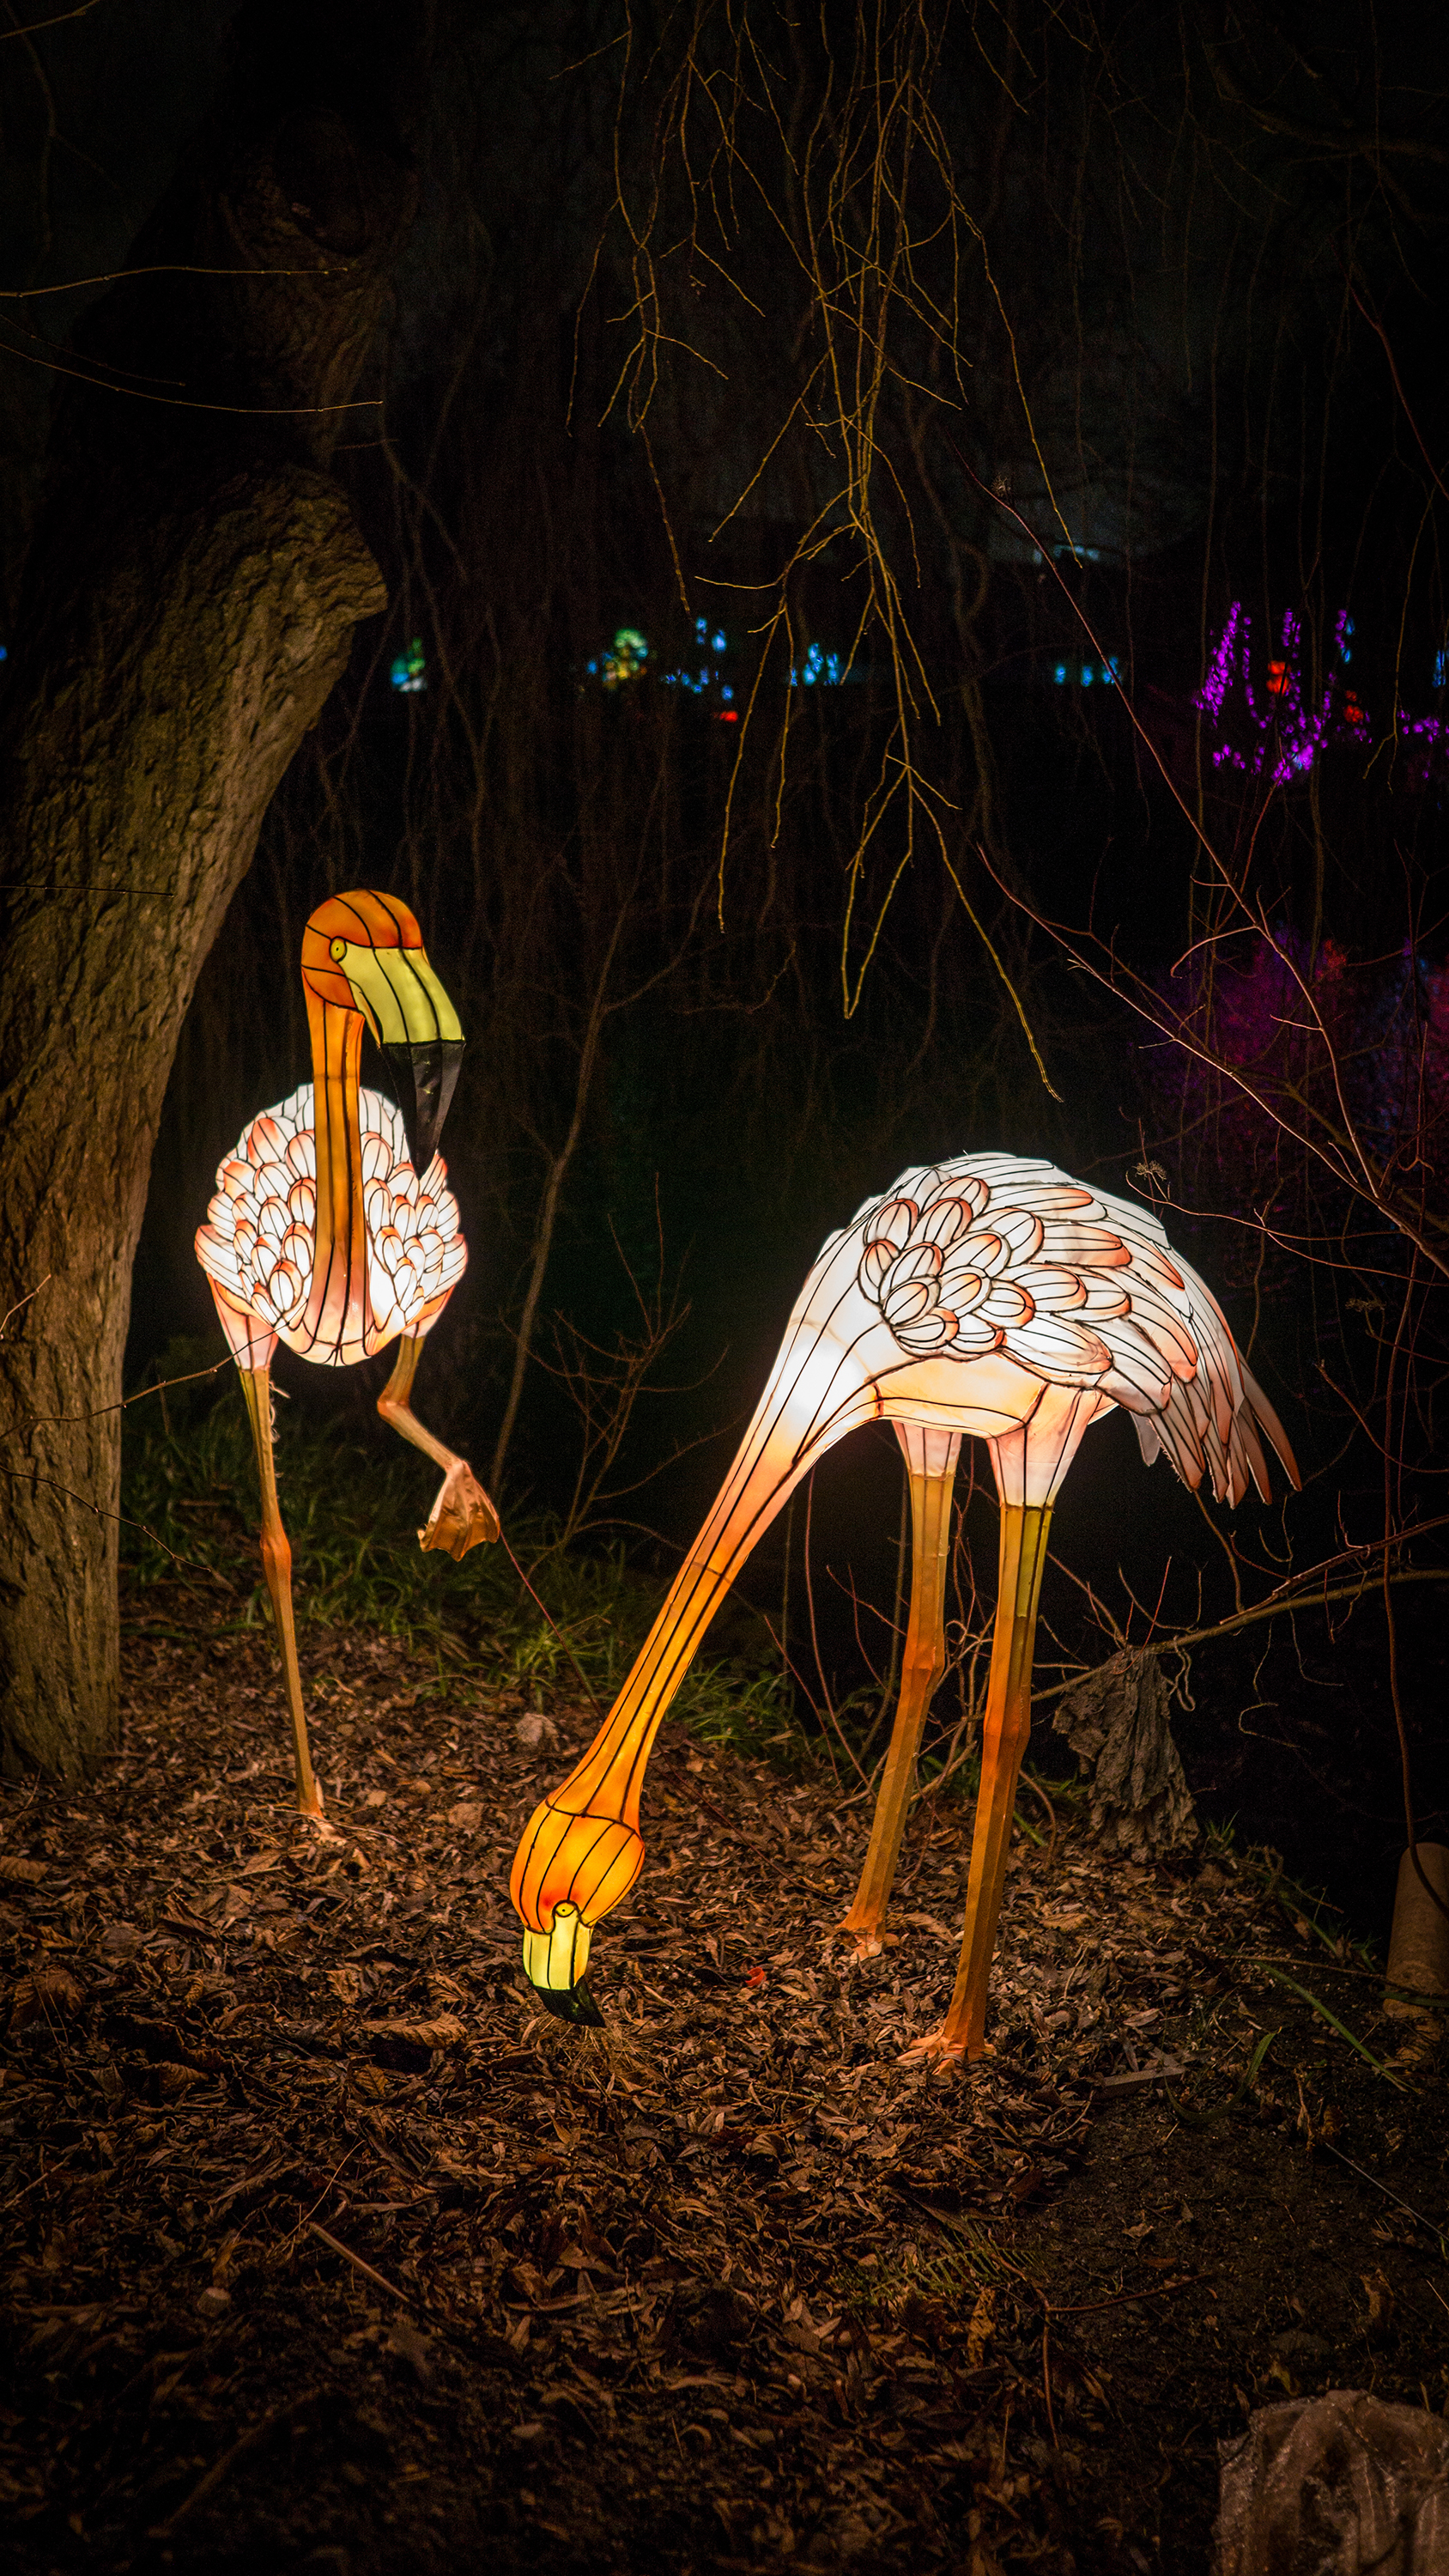 Flamingo light sculptures